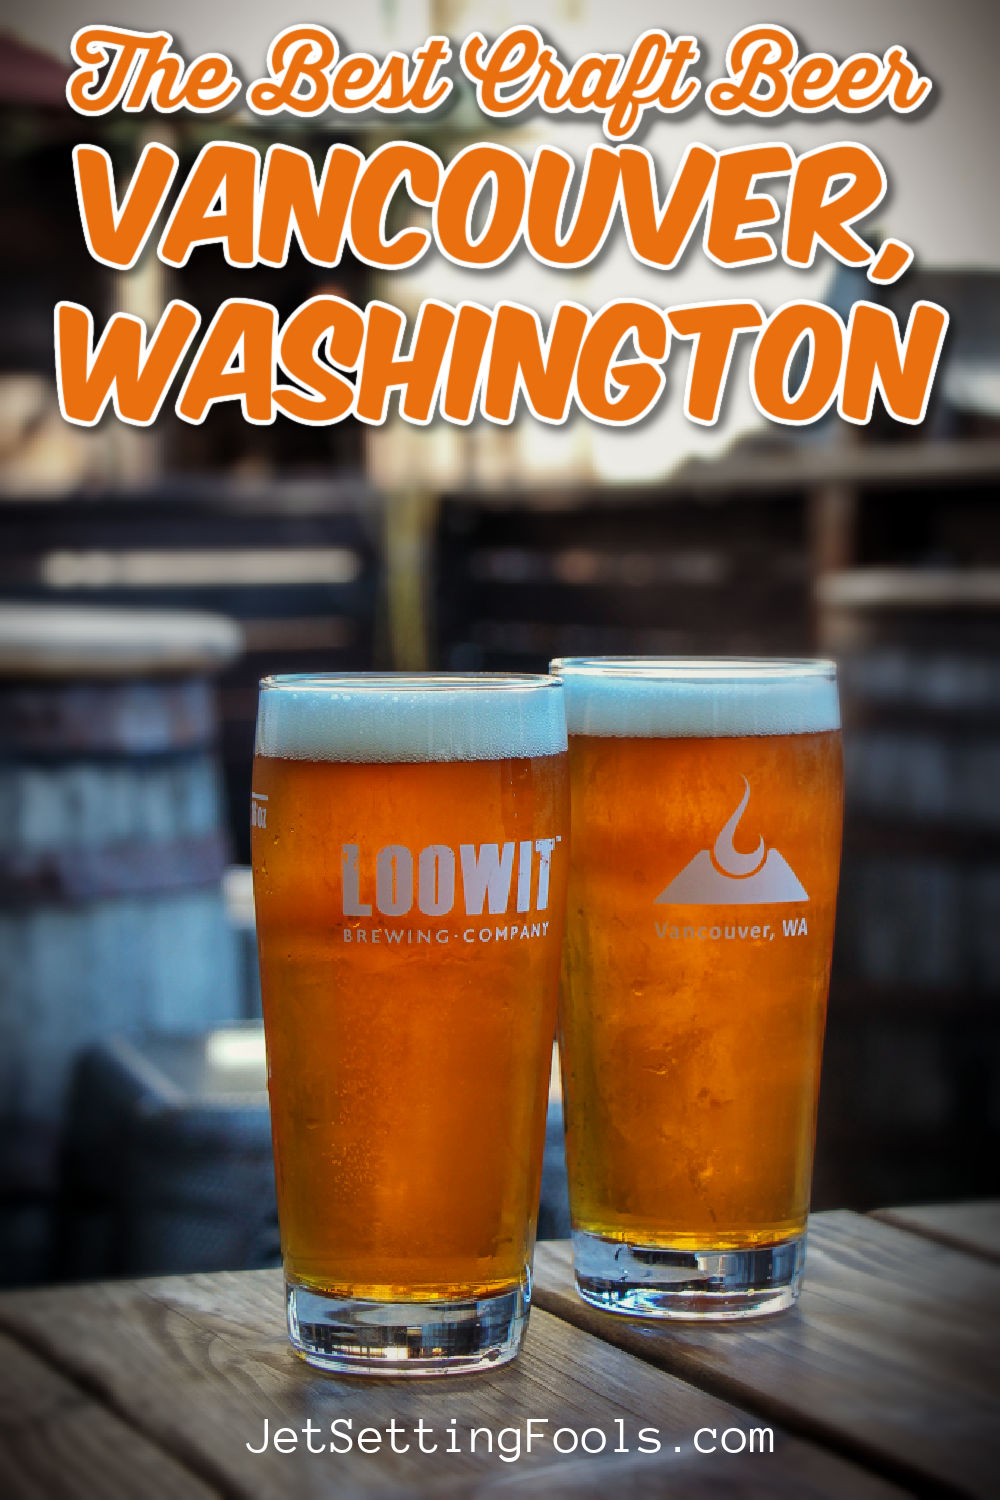 The Best Craft Beer Vancouver, Washington by JetSettingFools.com